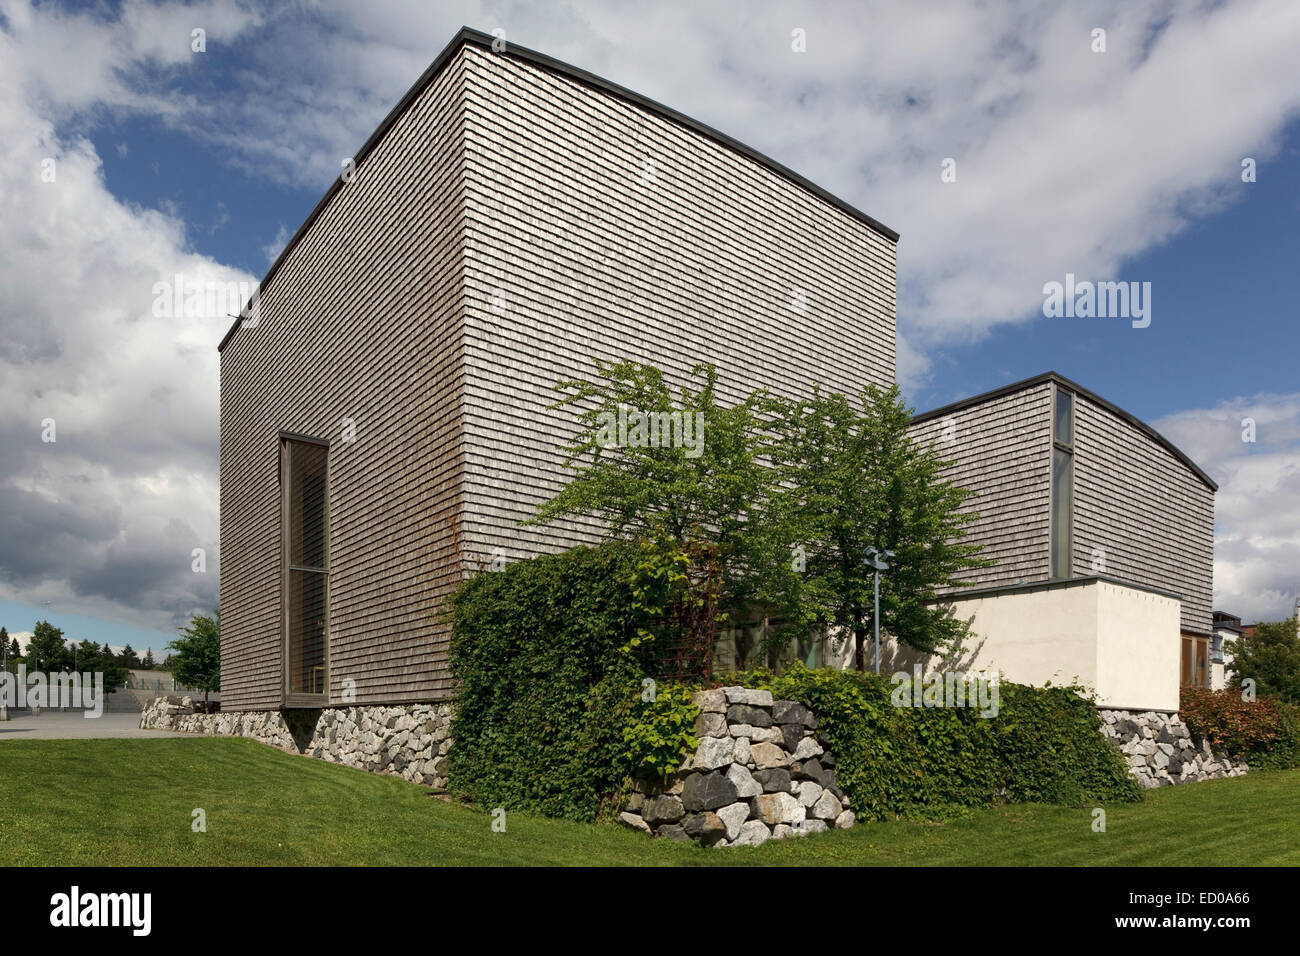 Viikki Church, Helsinki, Finland. Architect: JKMM Architects, 2005. Exterior, with weathered aspen cladding, seen - Stock Image